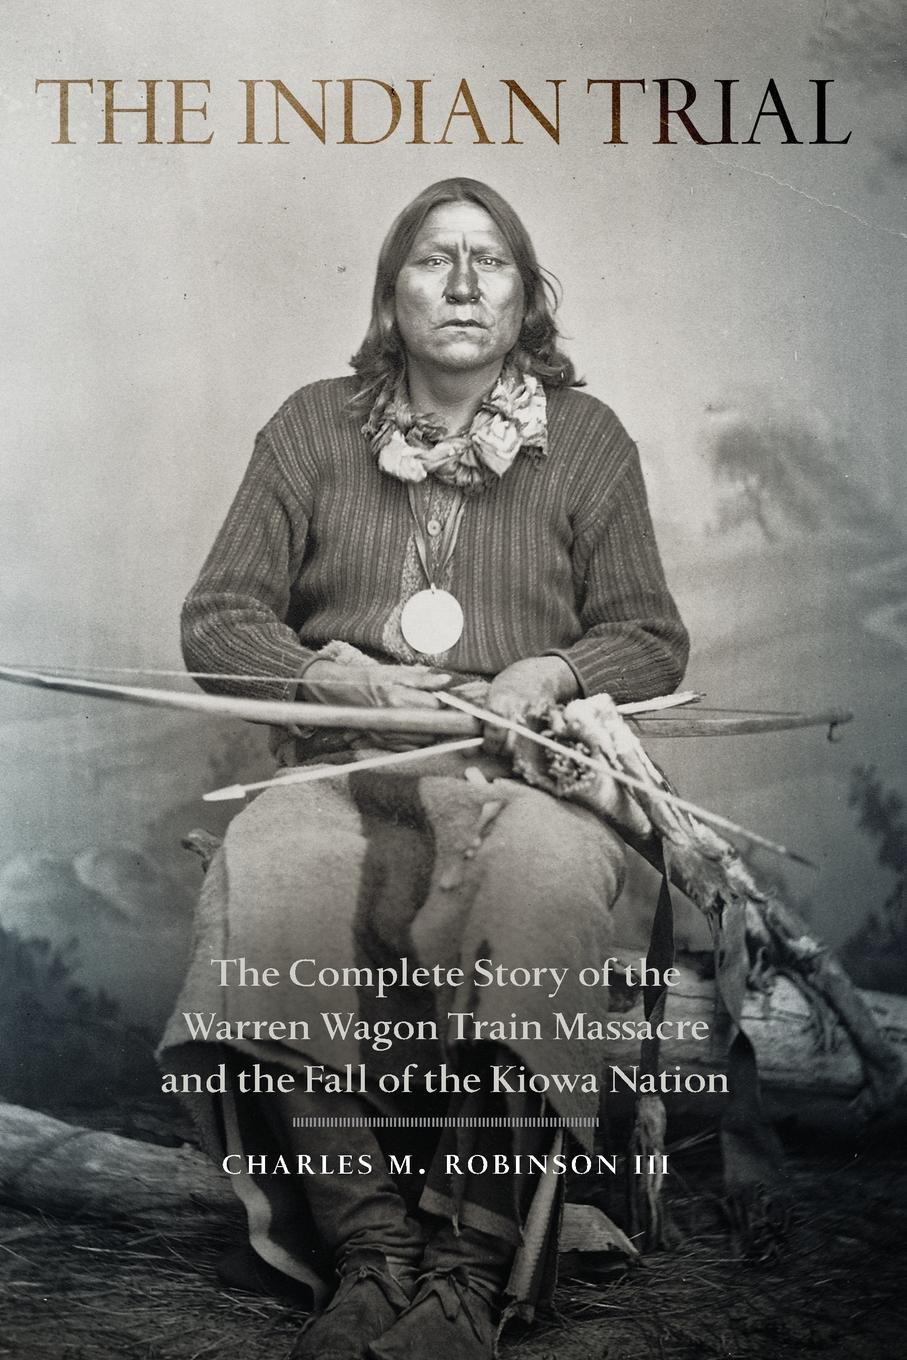 Indian Trial. The Complete Story of the Warren Wagon Train Massacre and the Fall of the Kiowa Nation